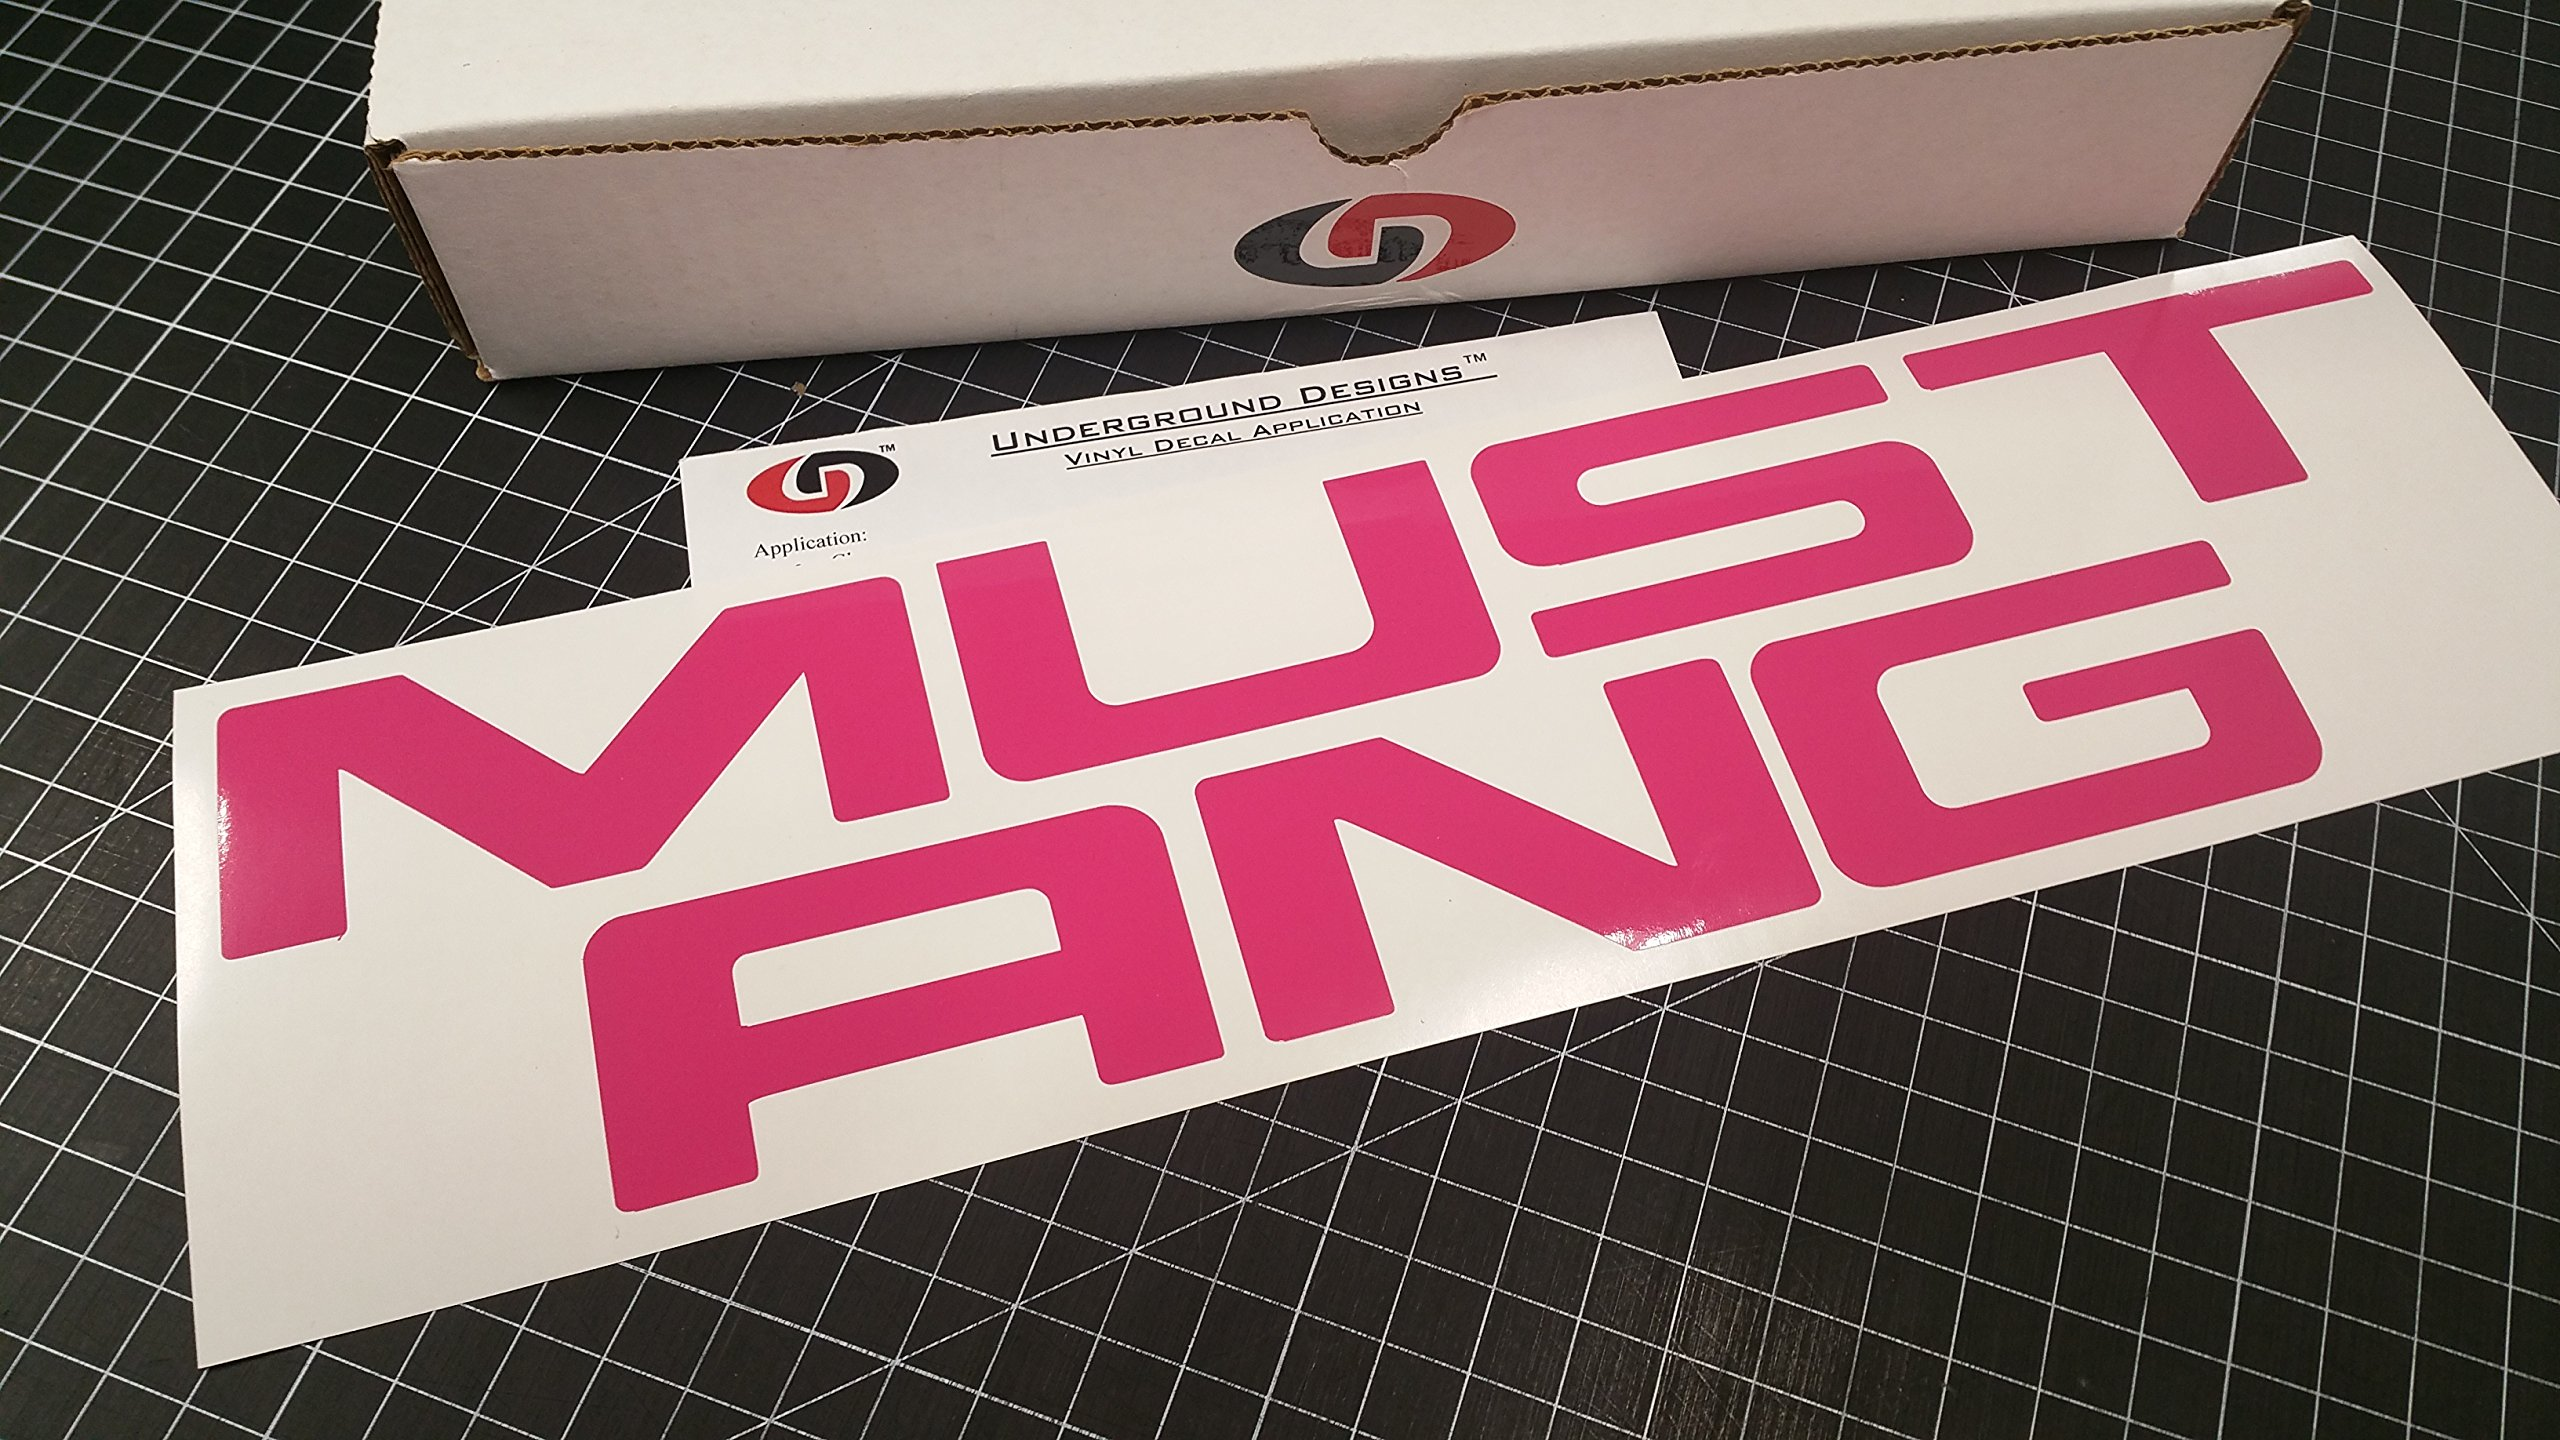 2004 Ford Mustang Rear Bumper Decal Letters PINK